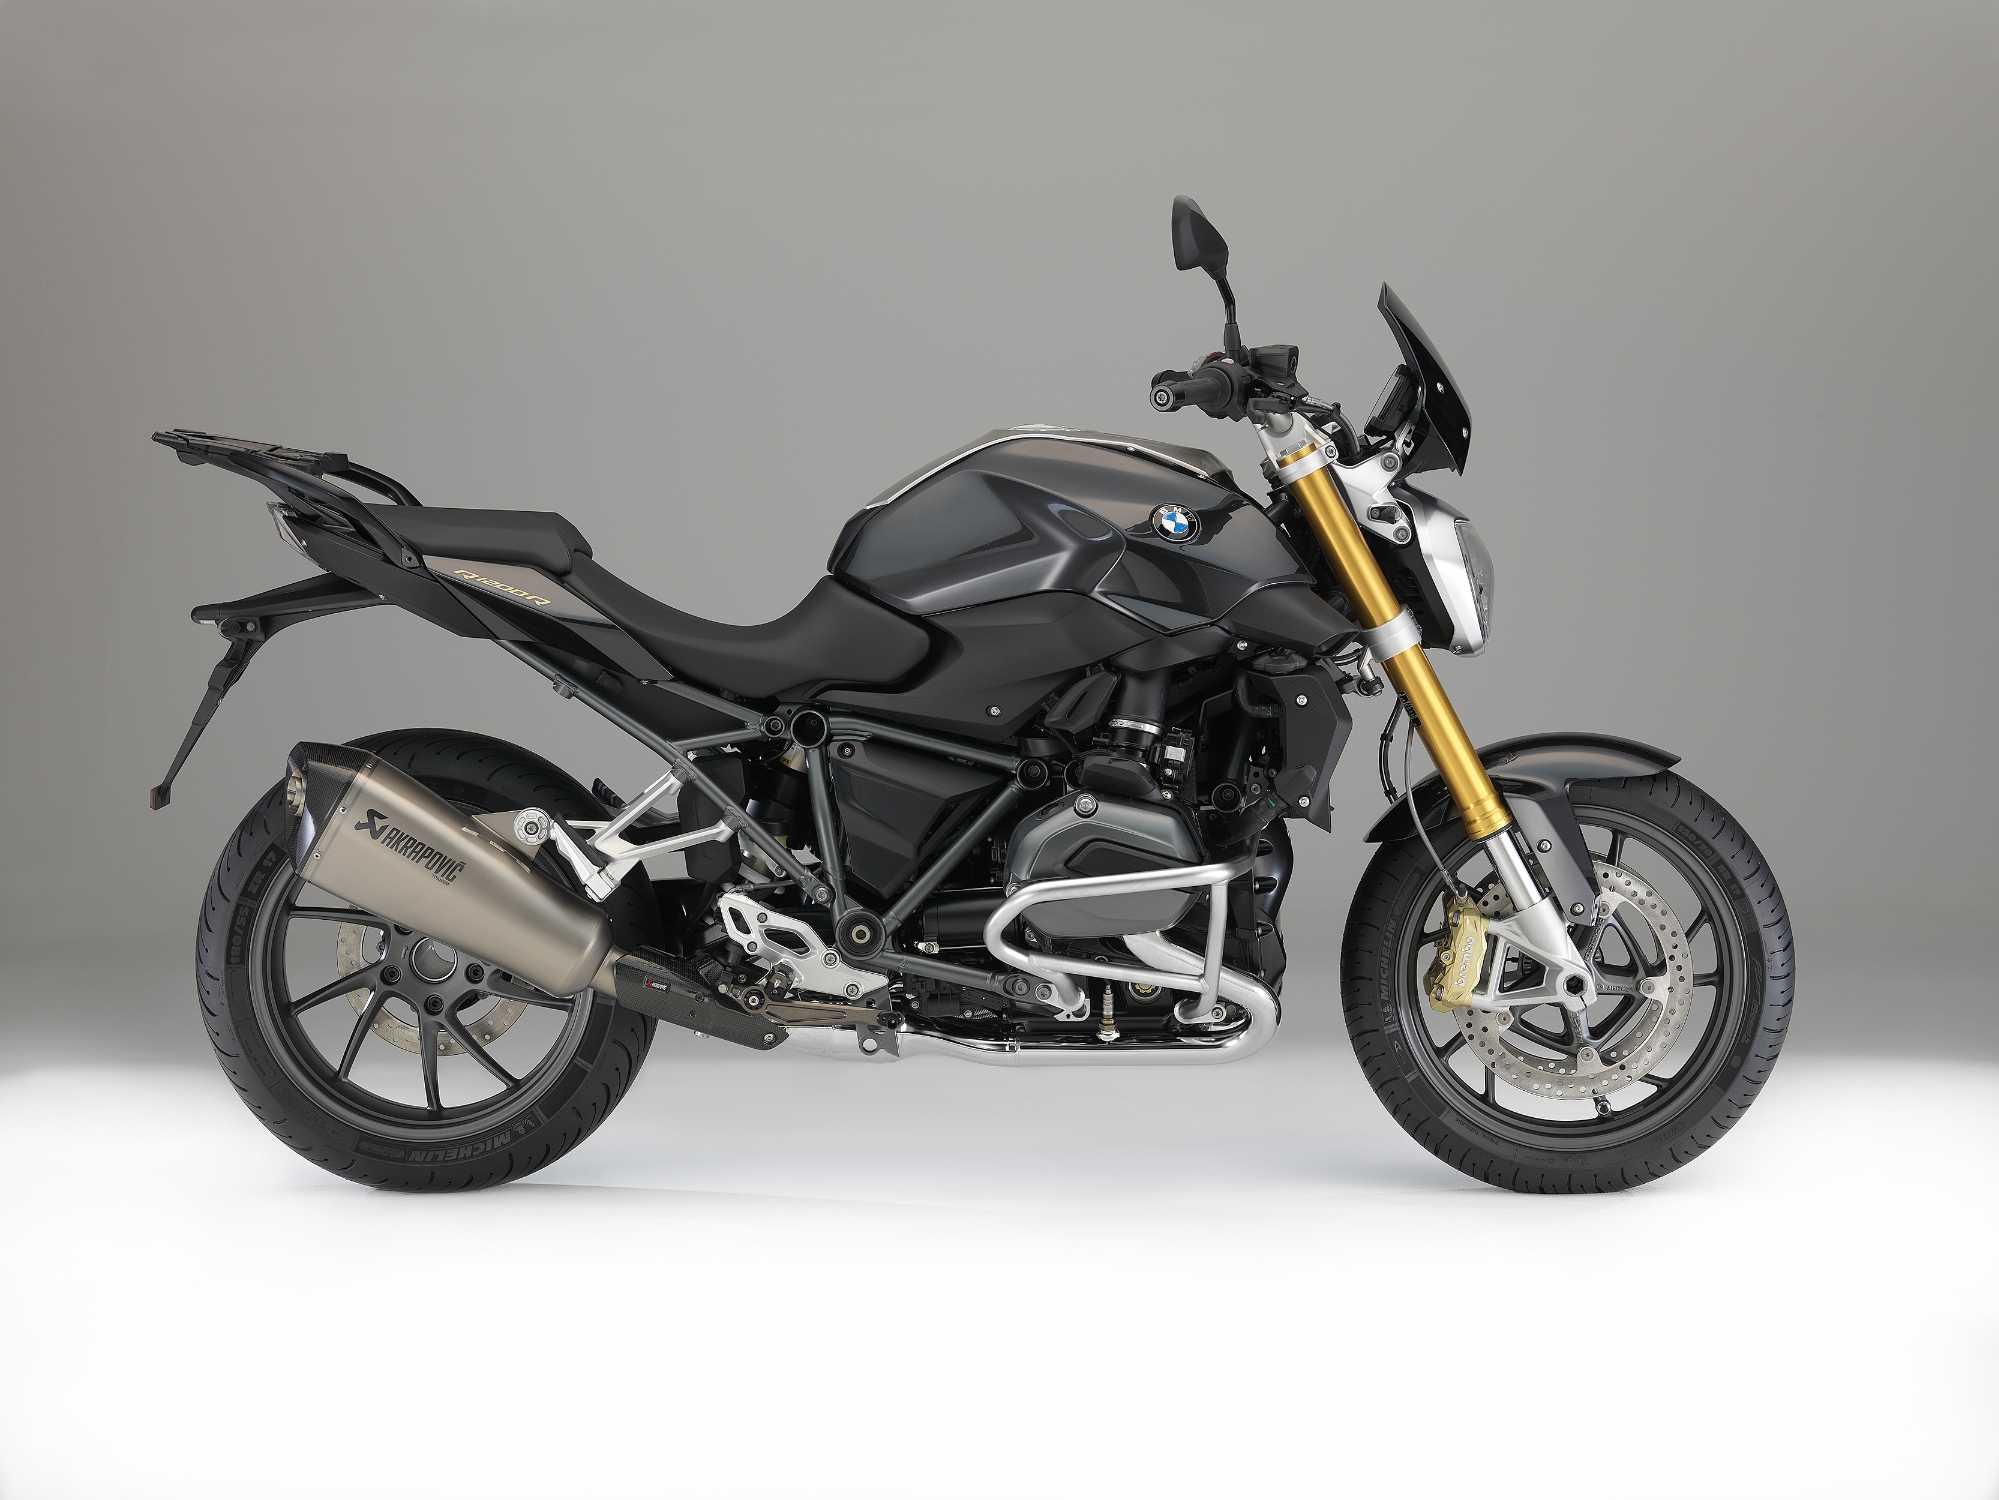 bmw r 1200 r with special accessories luggage grid. Black Bedroom Furniture Sets. Home Design Ideas